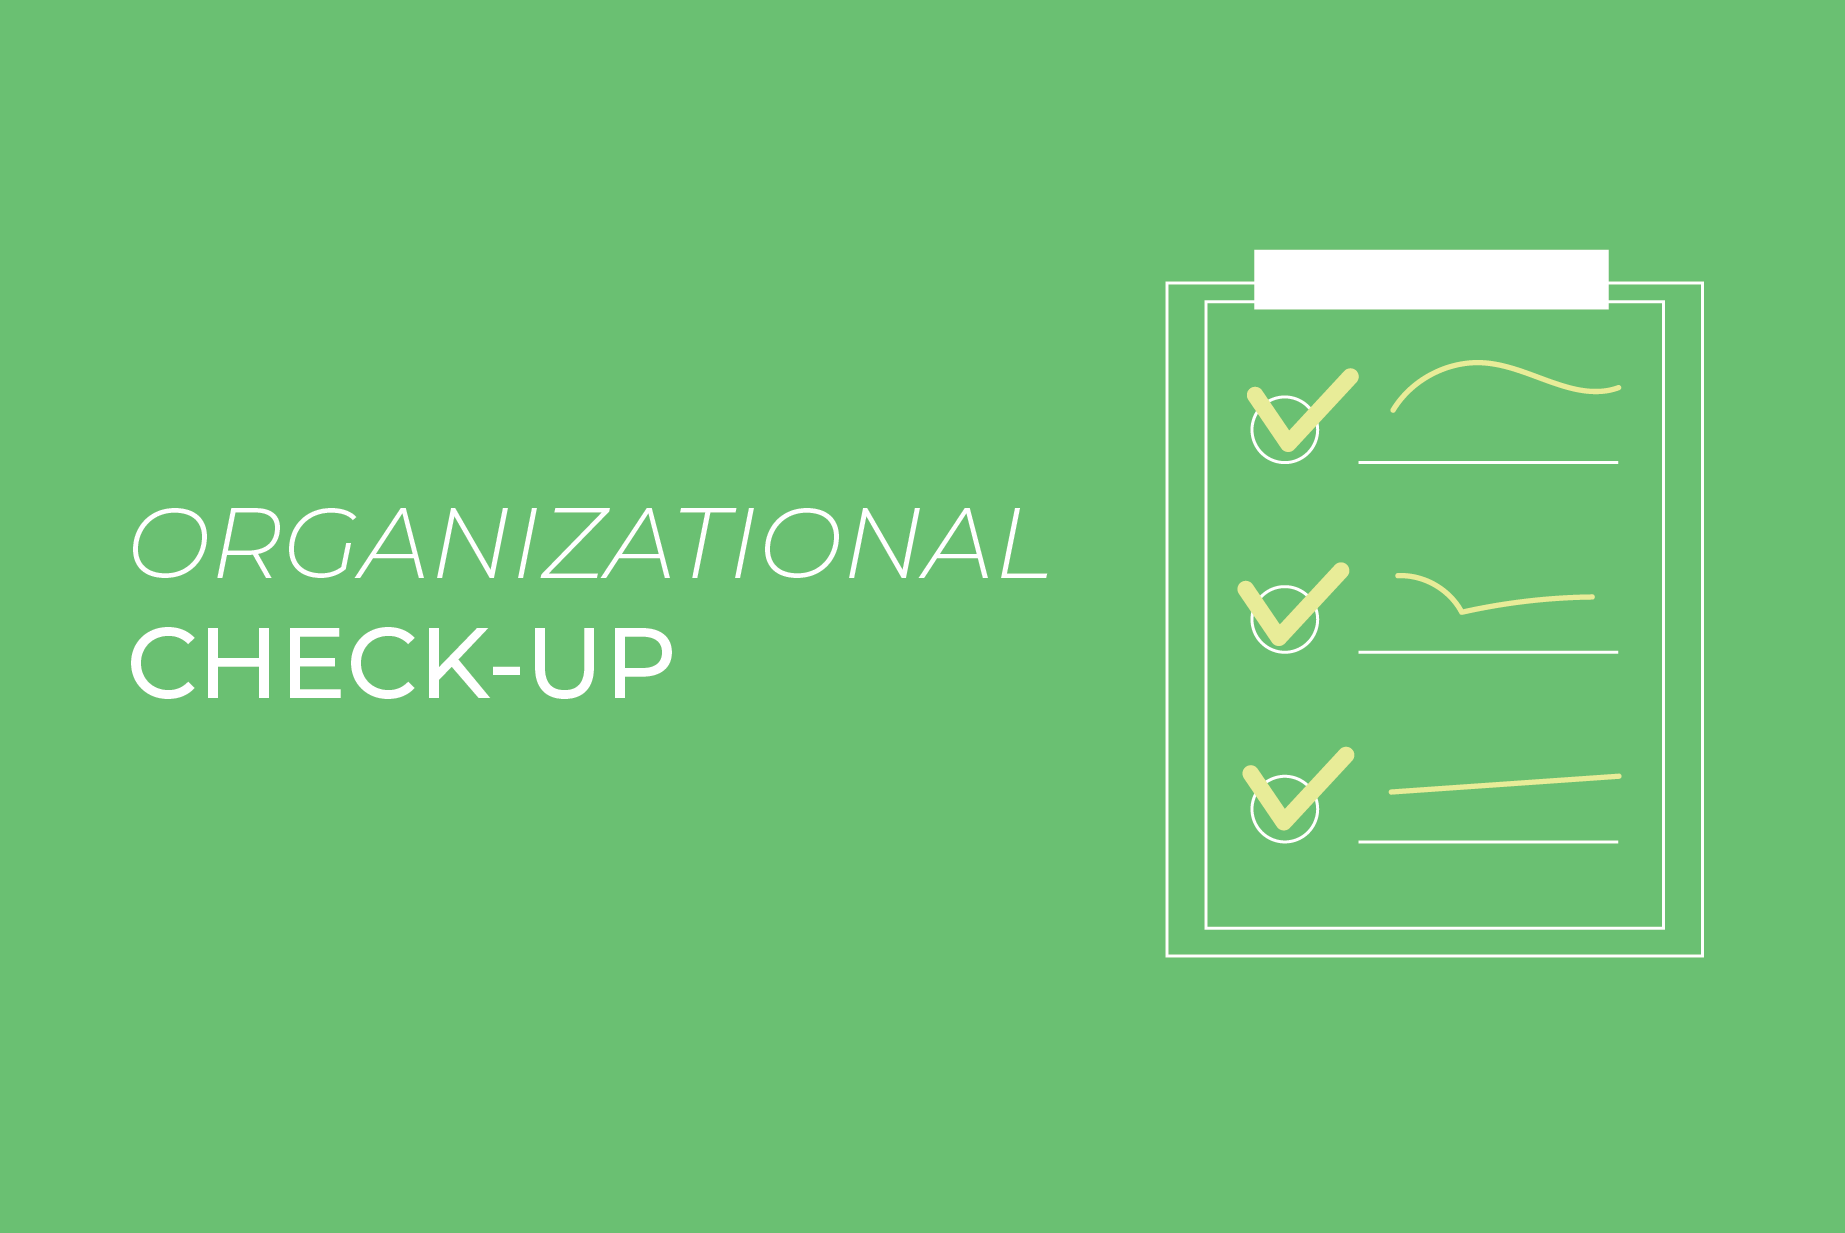 ORGANIZATIONAL CHECK-UP